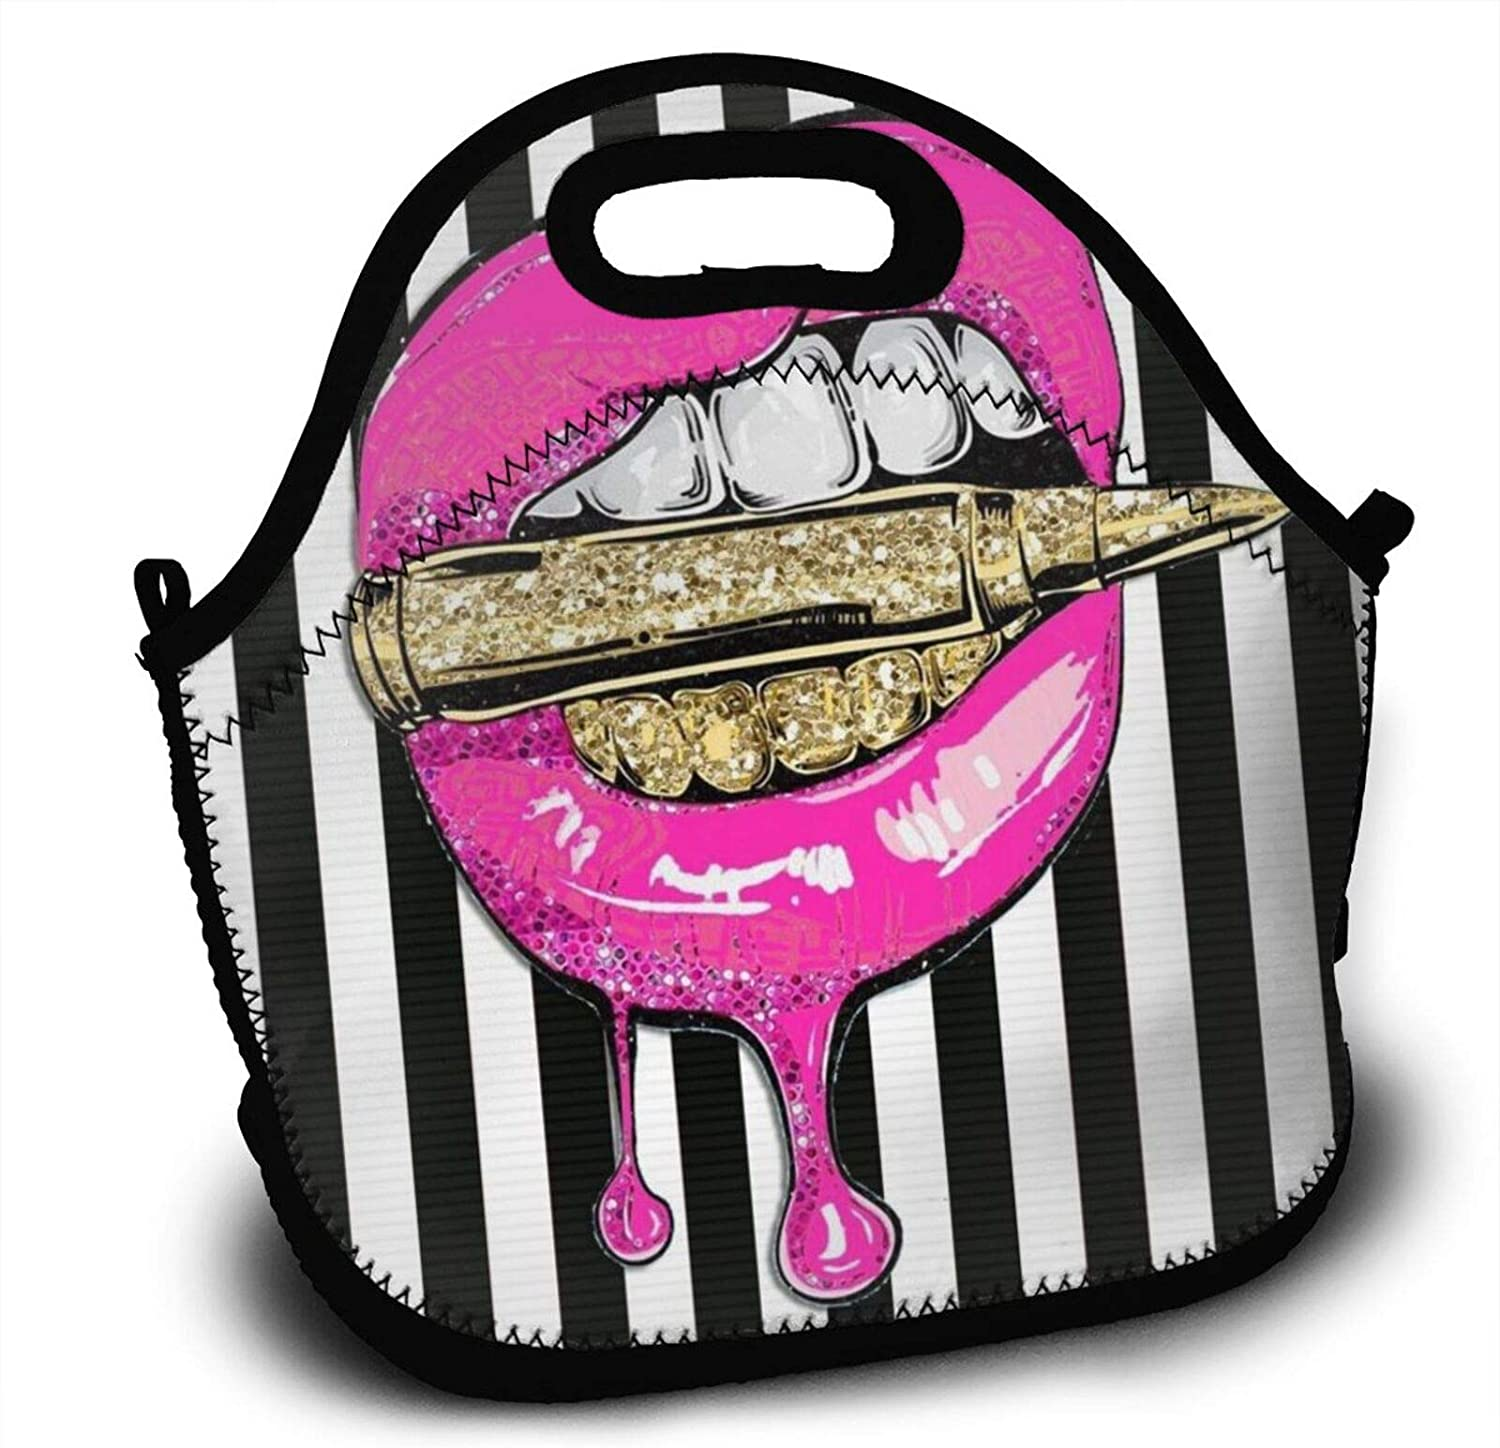 Pink Lips With Bullet Printed Lunch Bag,Handbag Bags For Women Picnic Thermal Carrying Gourmet Food Container Organizer,Reusable Insulated Lunch Box